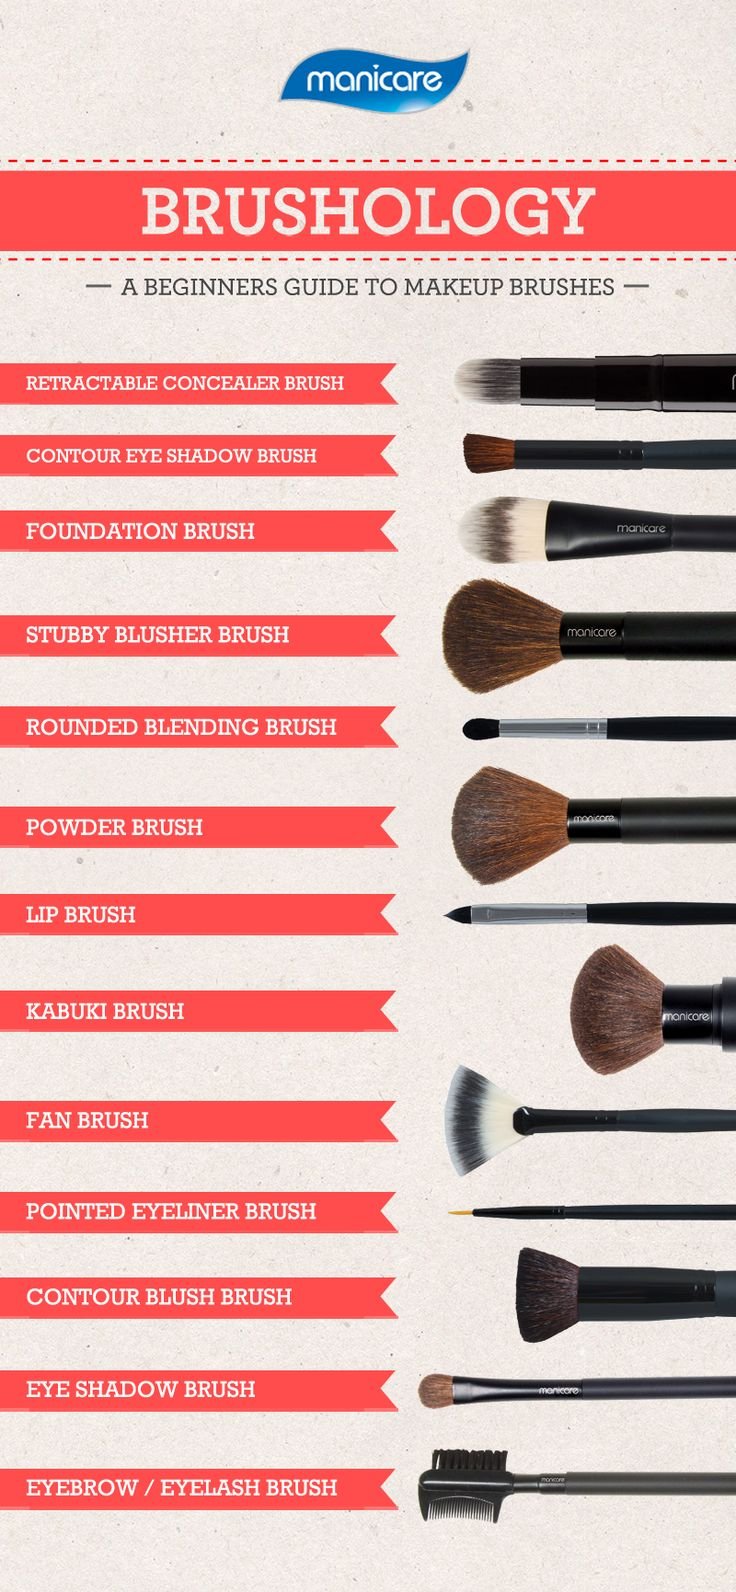 Alot of these brushes can be purchased at art stores for more